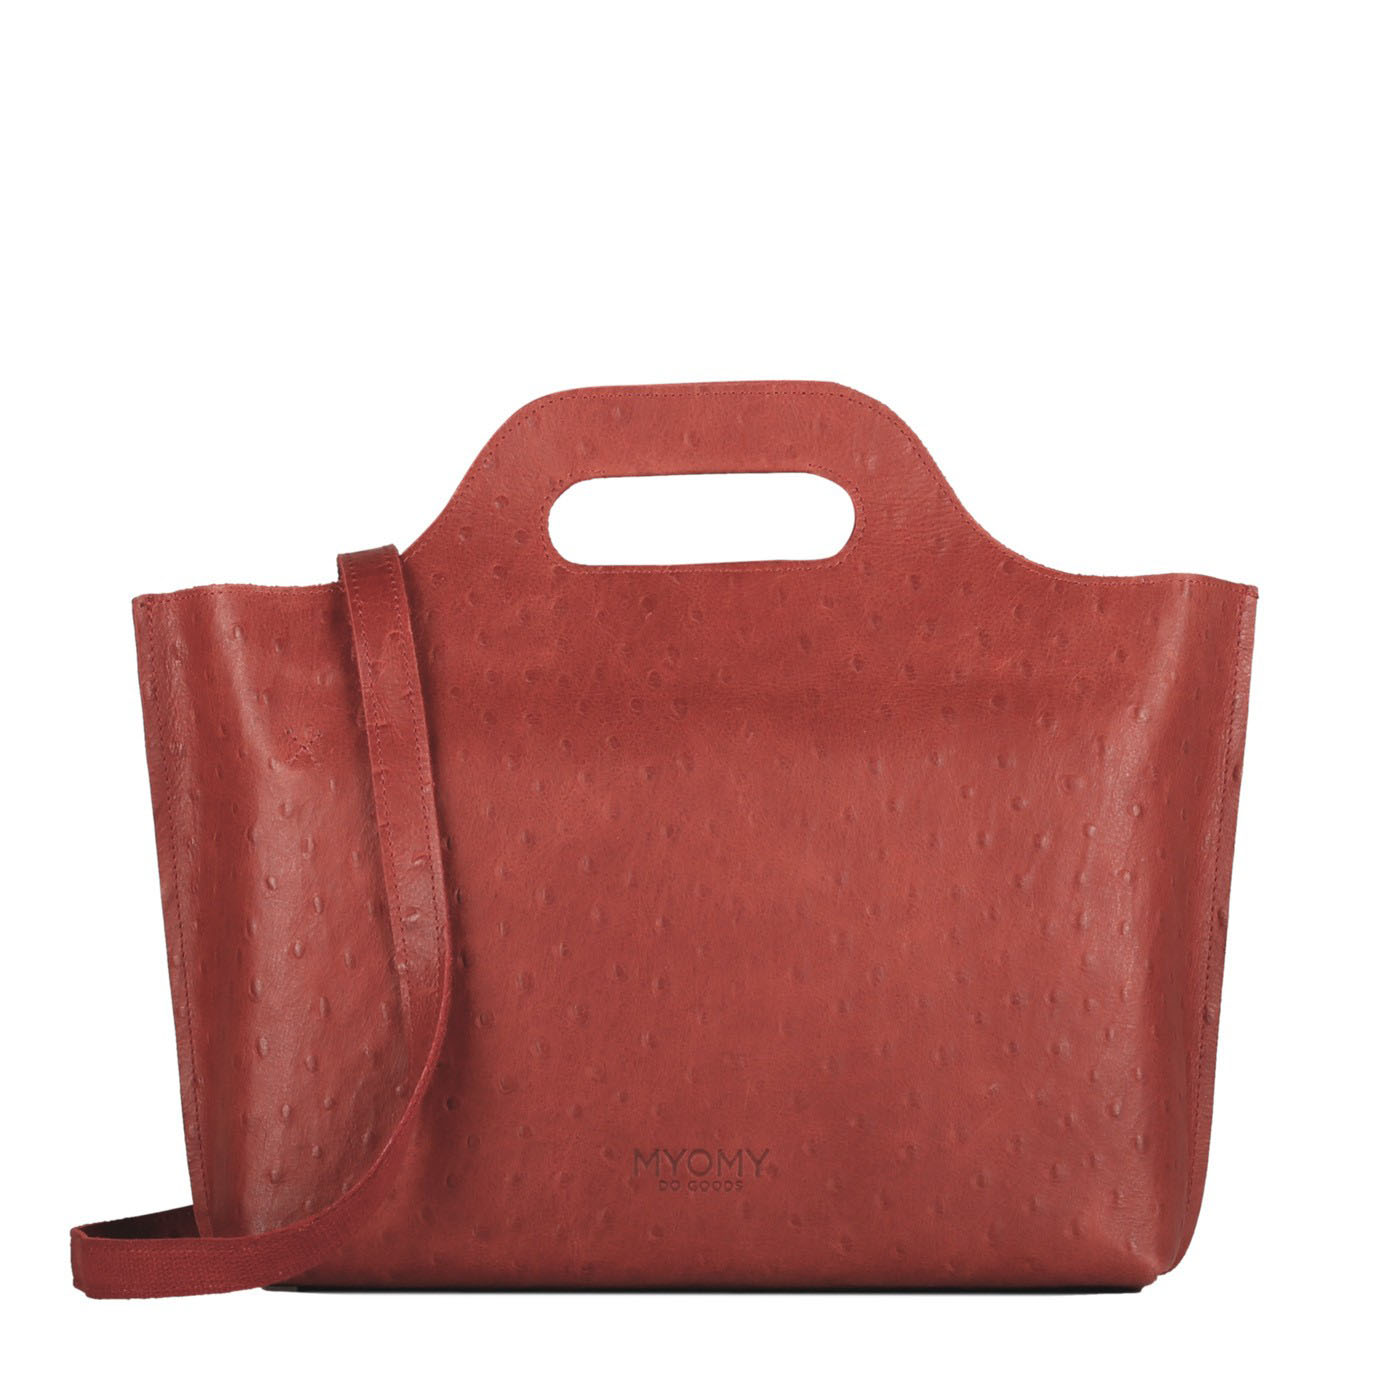 MY CARRY BAG Handbag – ostrich red